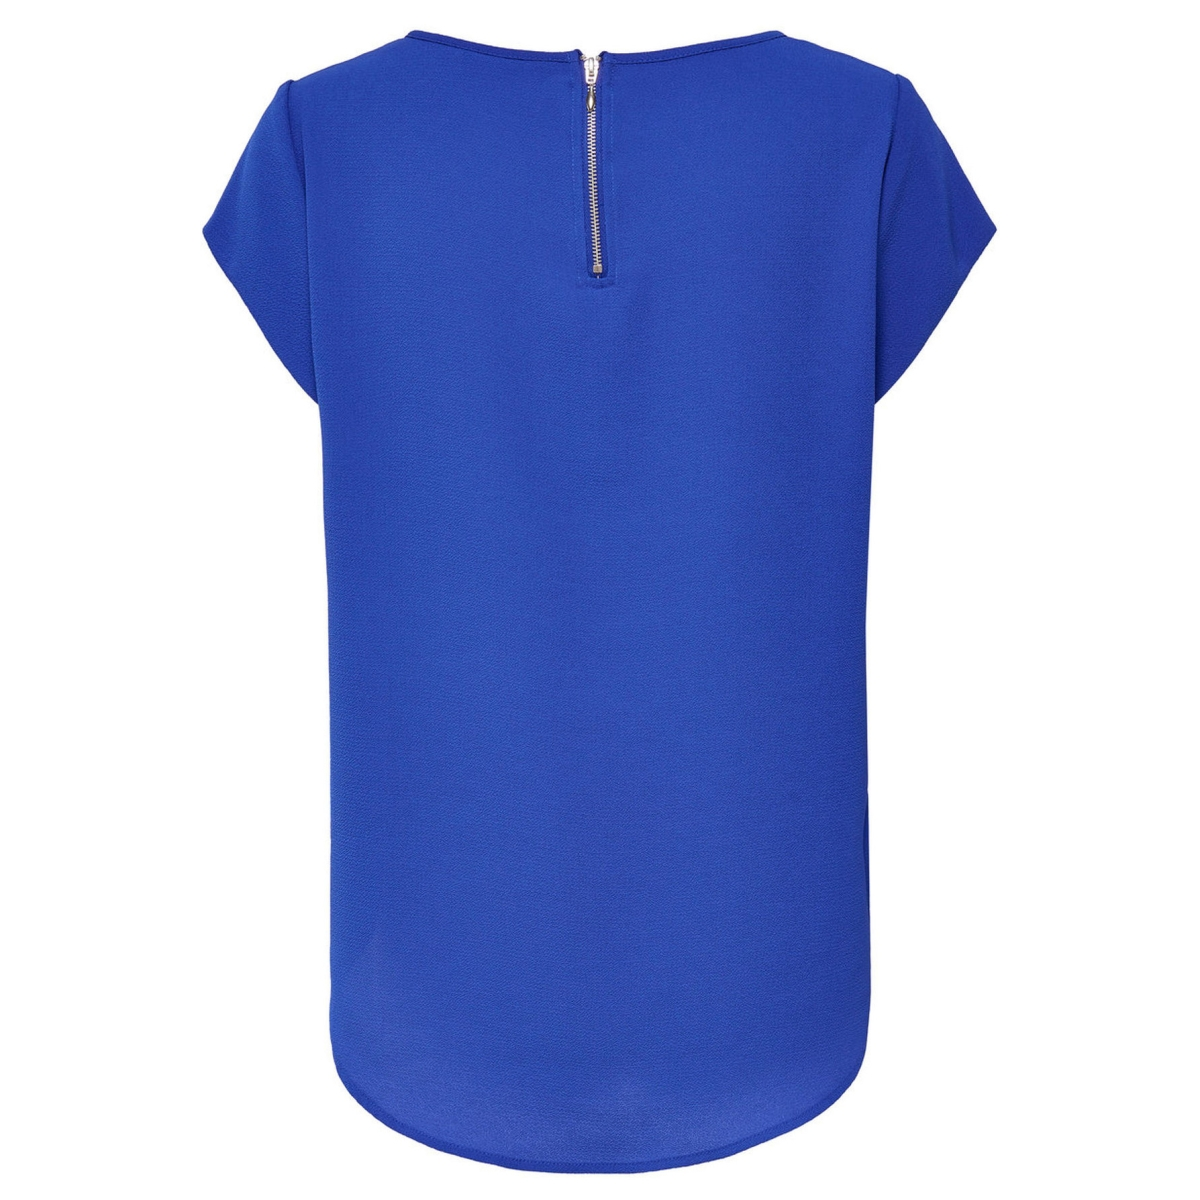 onlvic s/s solid top noos wvn 15142784 only t-shirt surf the web